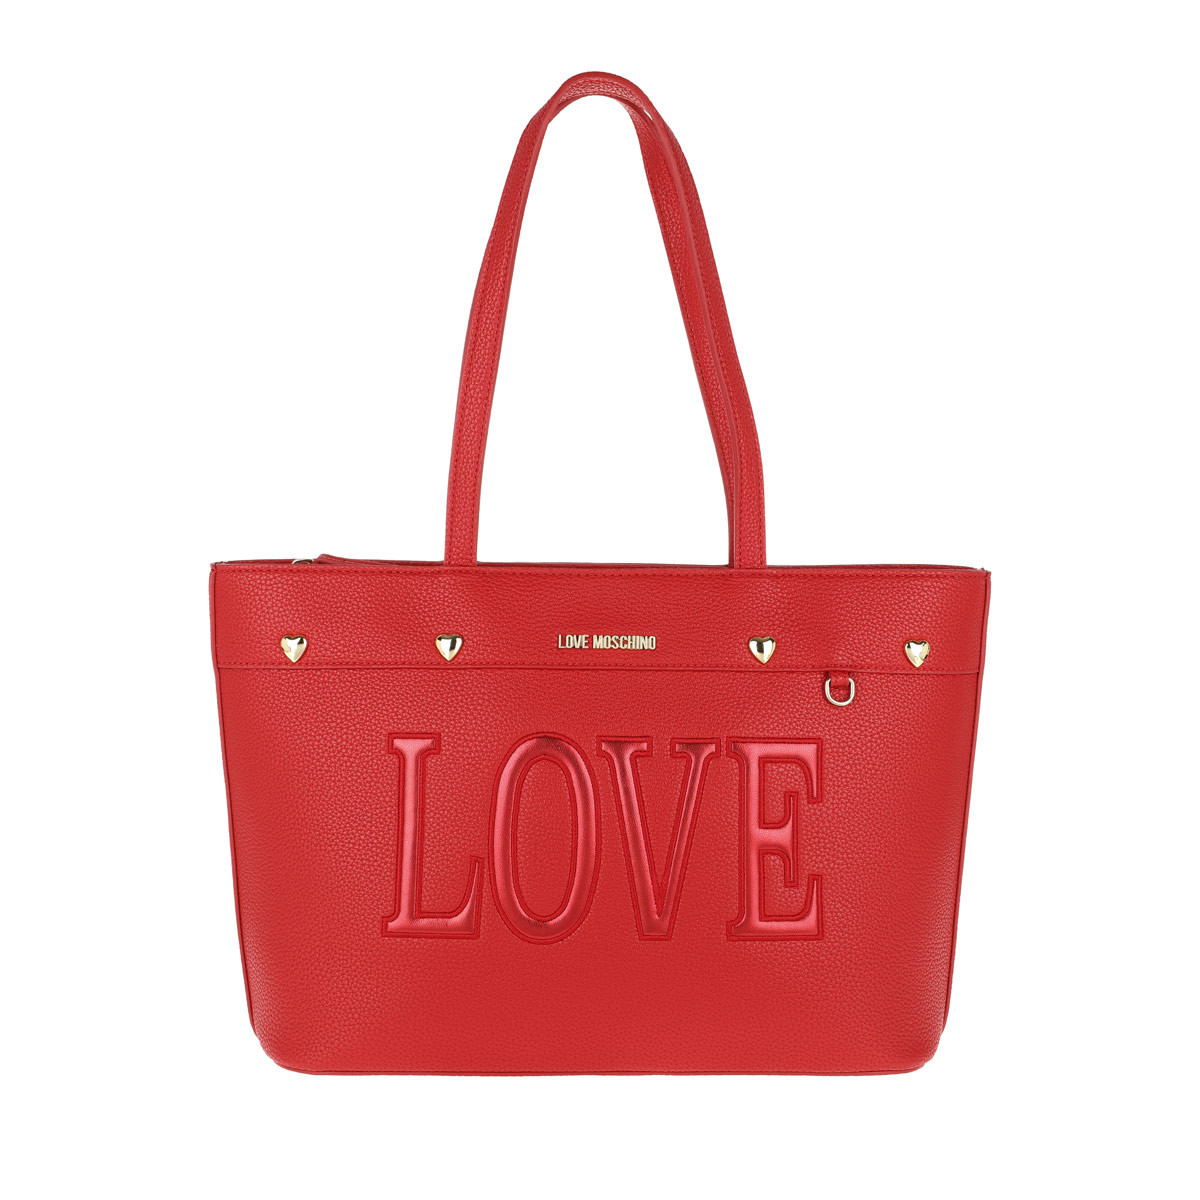 Love Moschino Shopper - Pebble Pu Love Shopper Rosso - in rot - für Damen